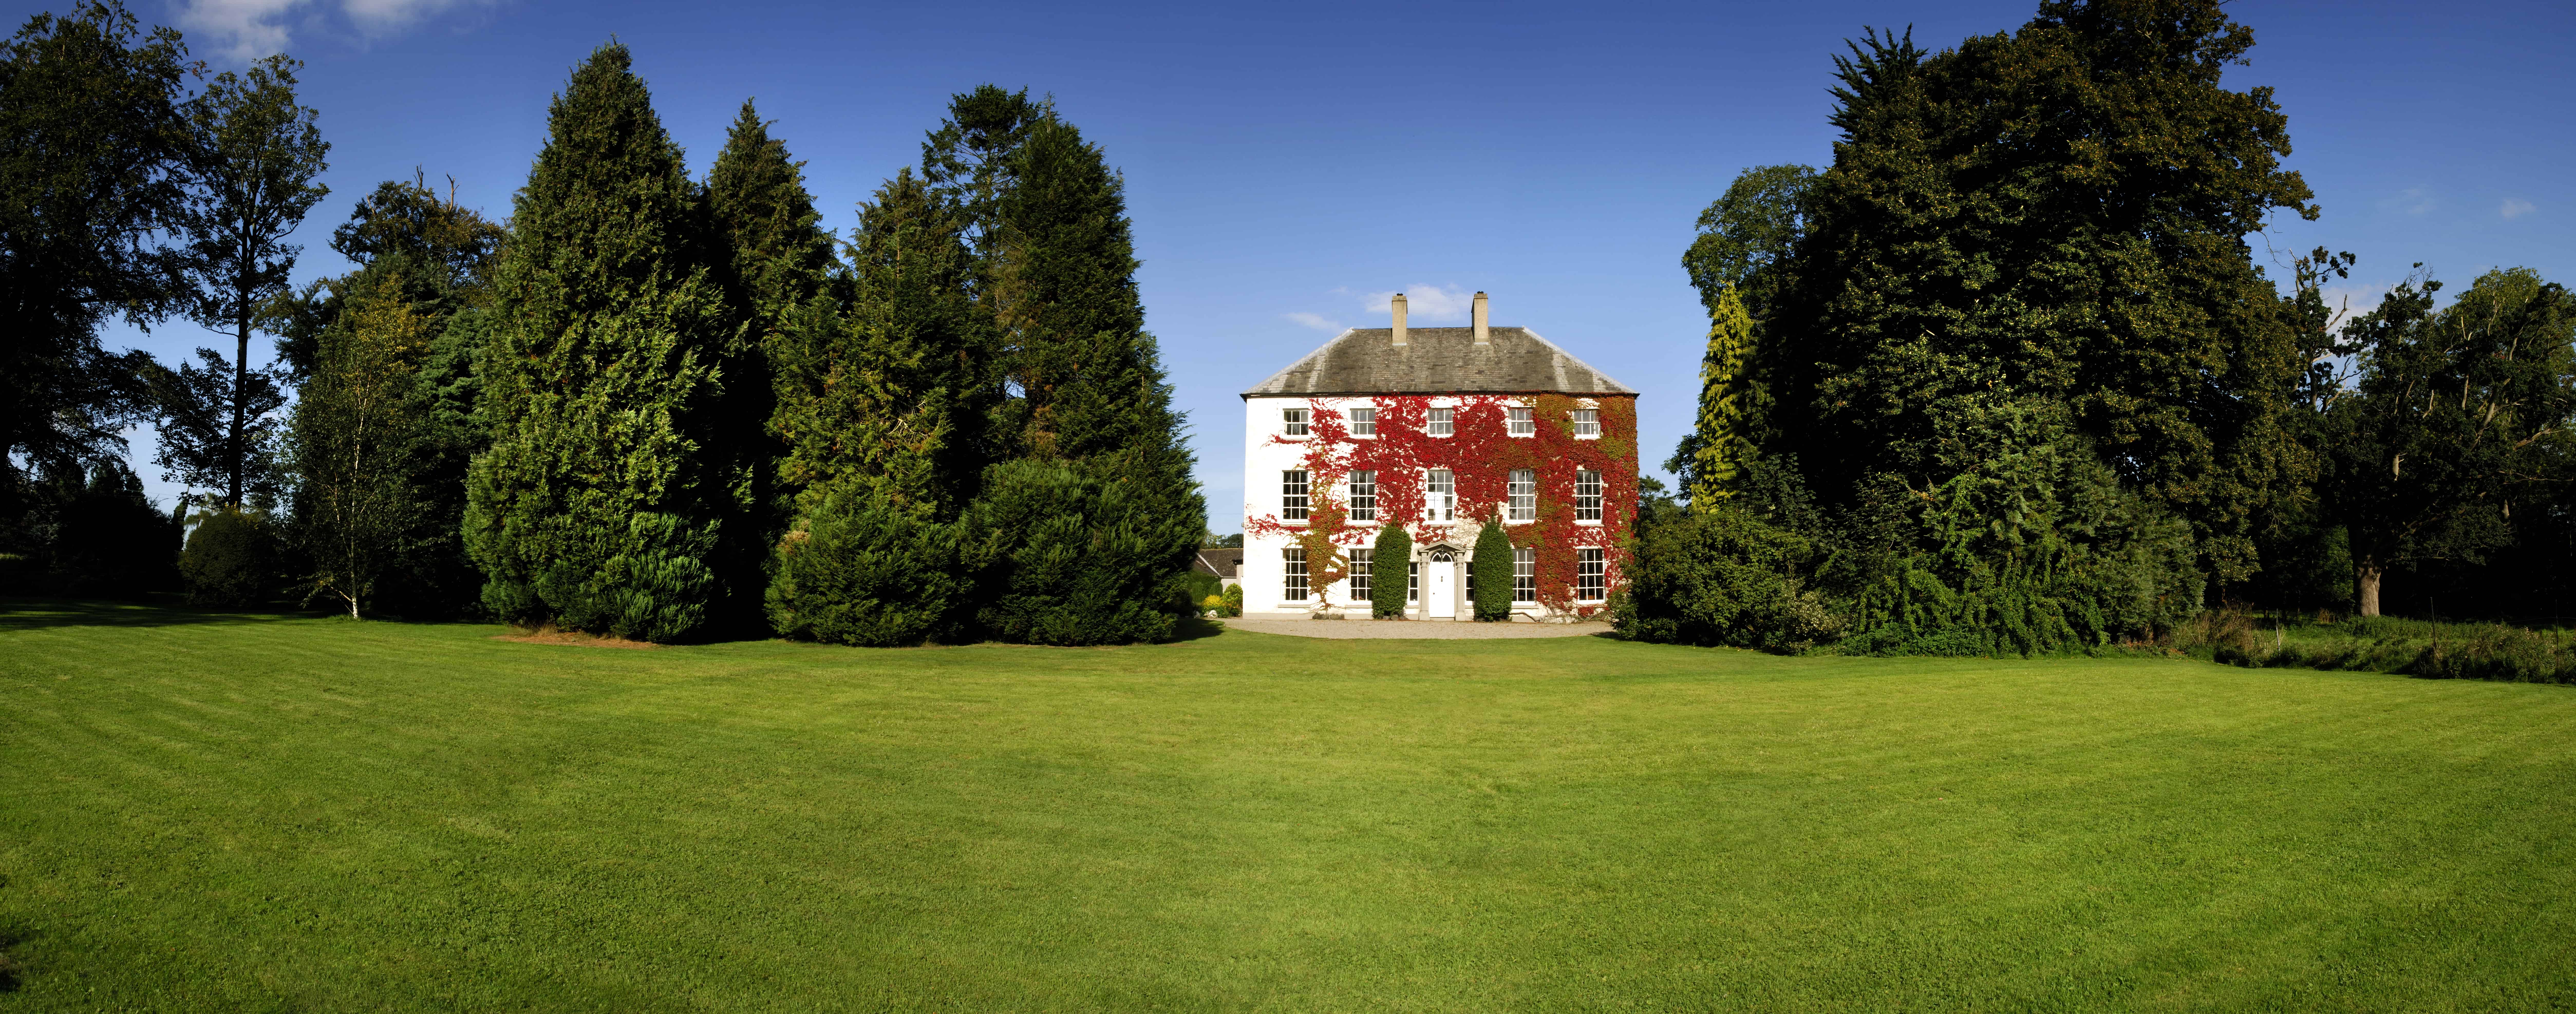 Hotels in Co. Armagh